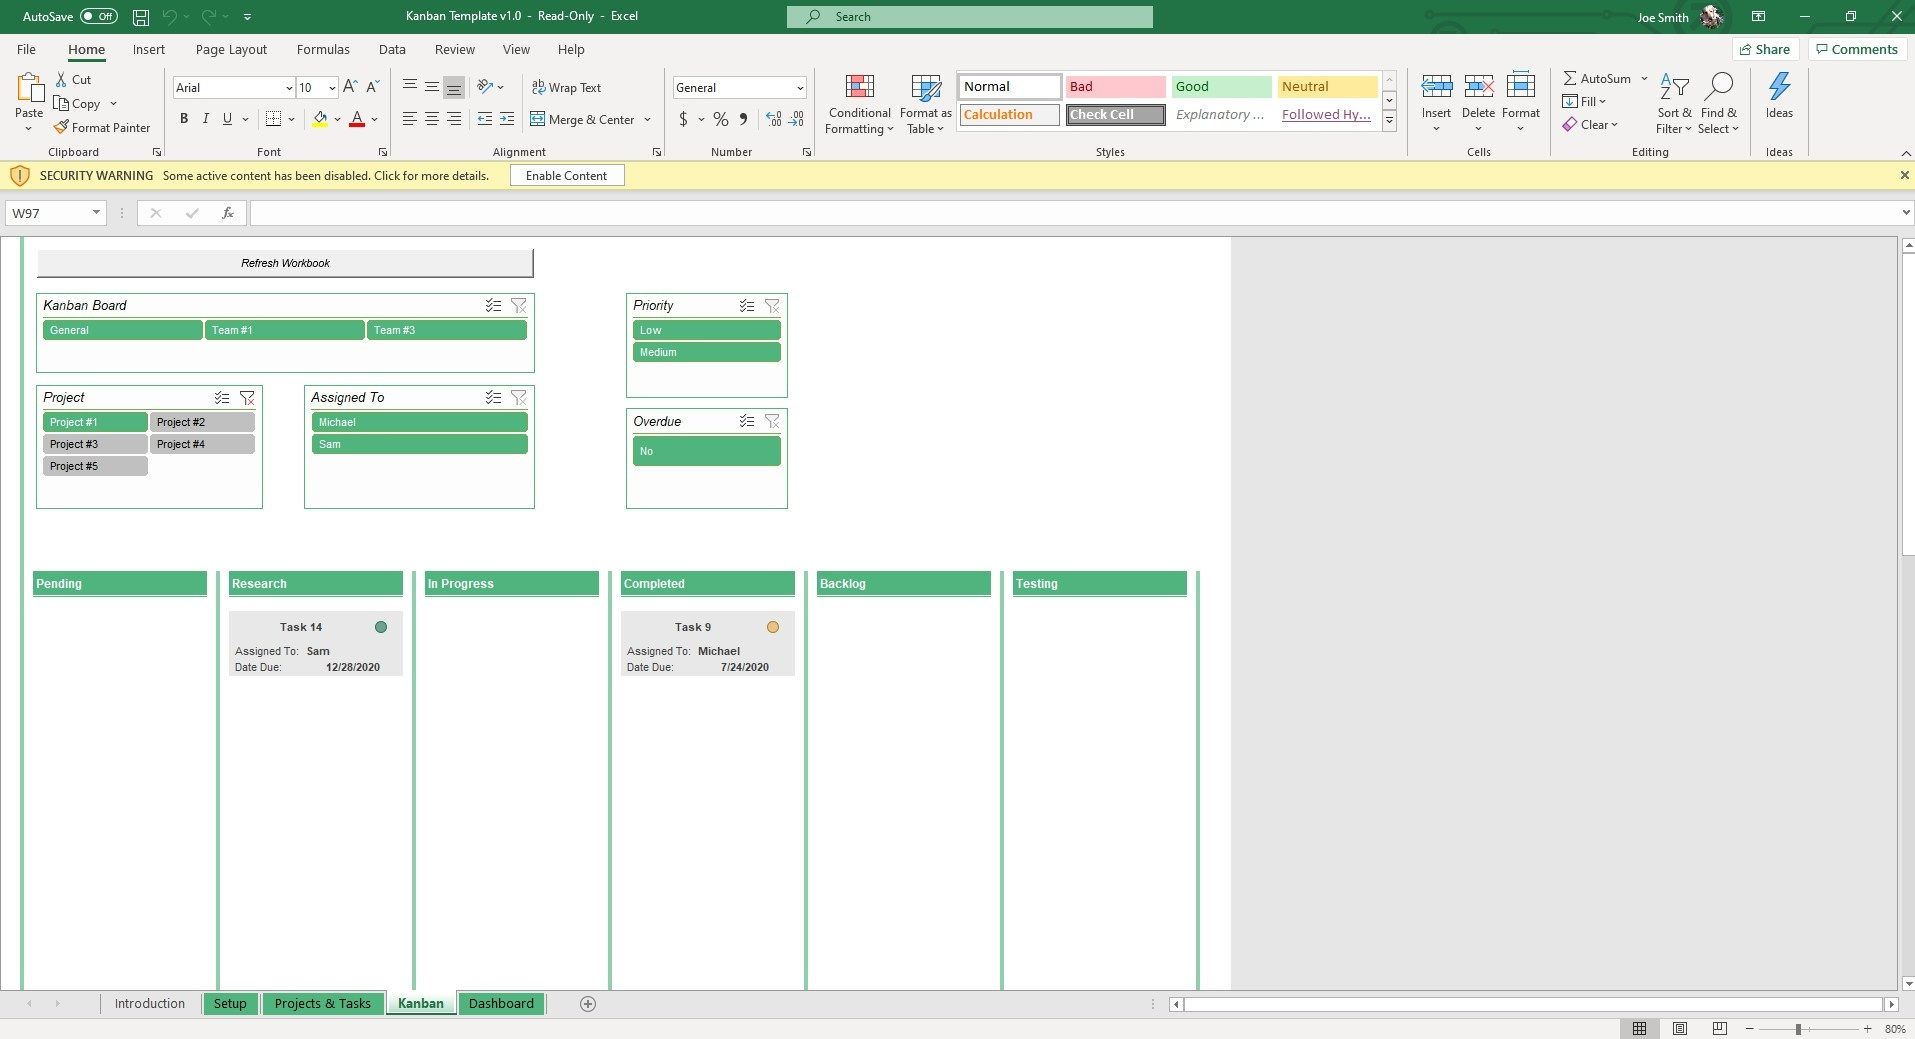 View your Kanban Board and select which Board, Project and Person tasks are assigned to. You can also filter by priority and overdue to see the most pressing tasks.